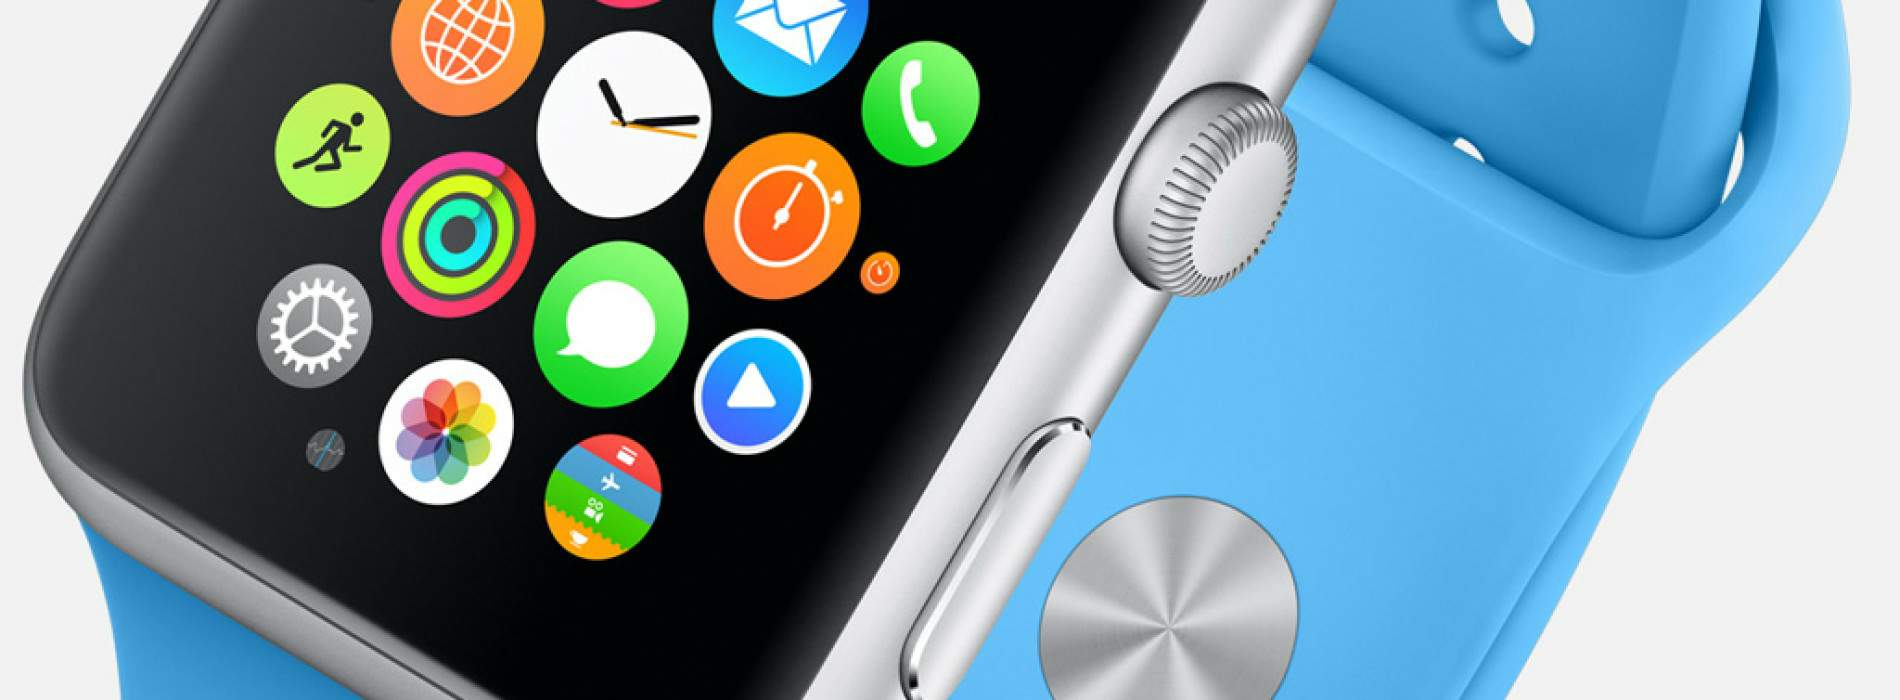 Apple Watch: Sus claves y curiosidades